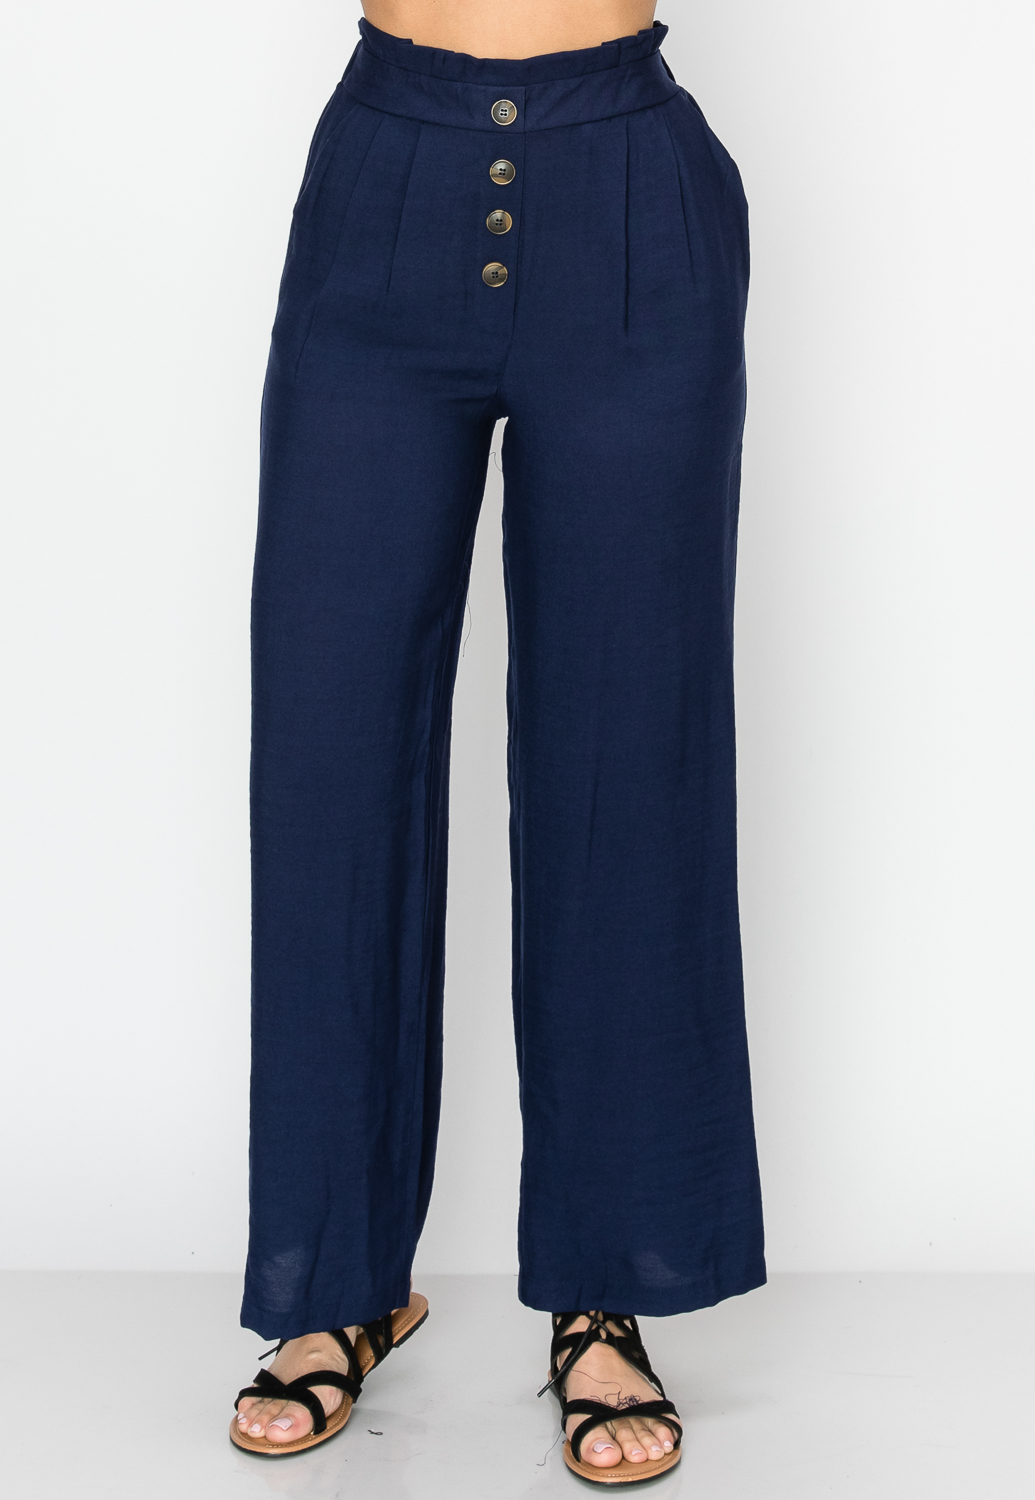 Front Button Detail Casual Pants